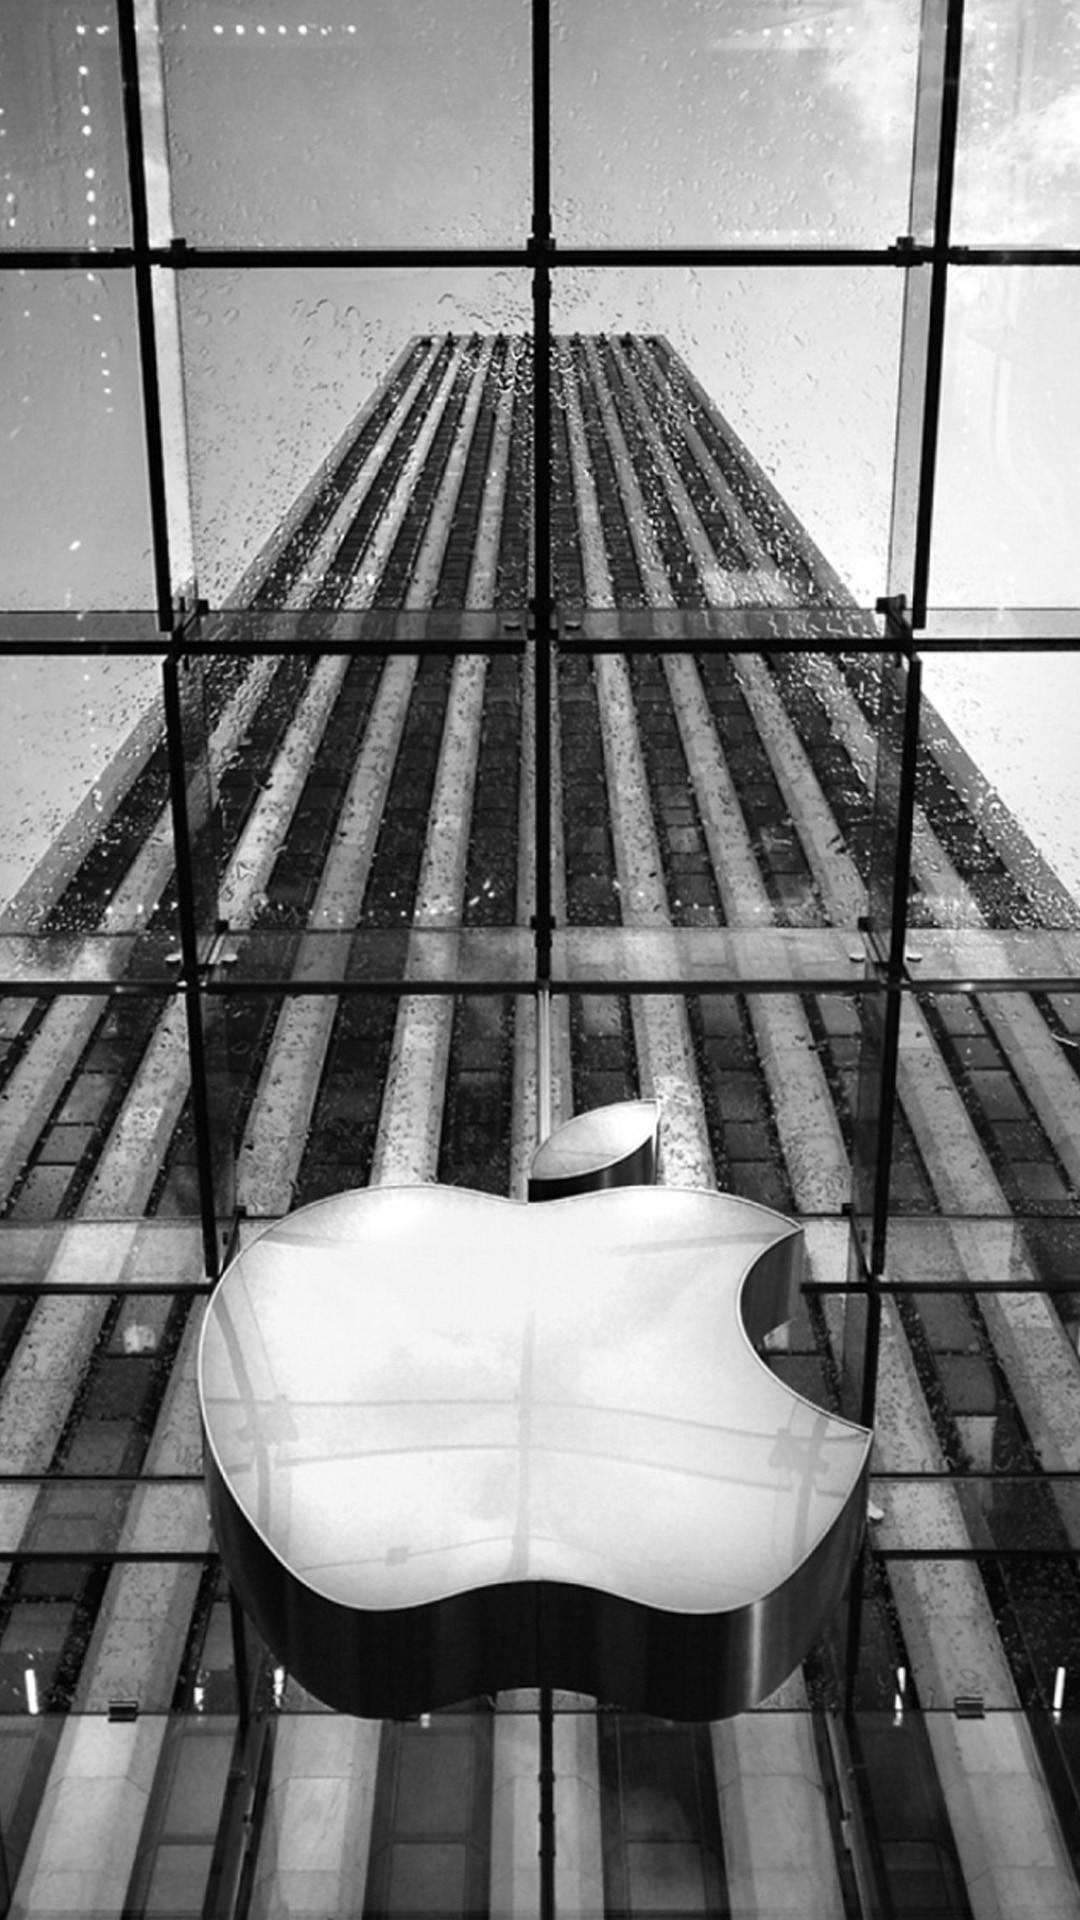 1080x1920 Download apple logo on apple store new york